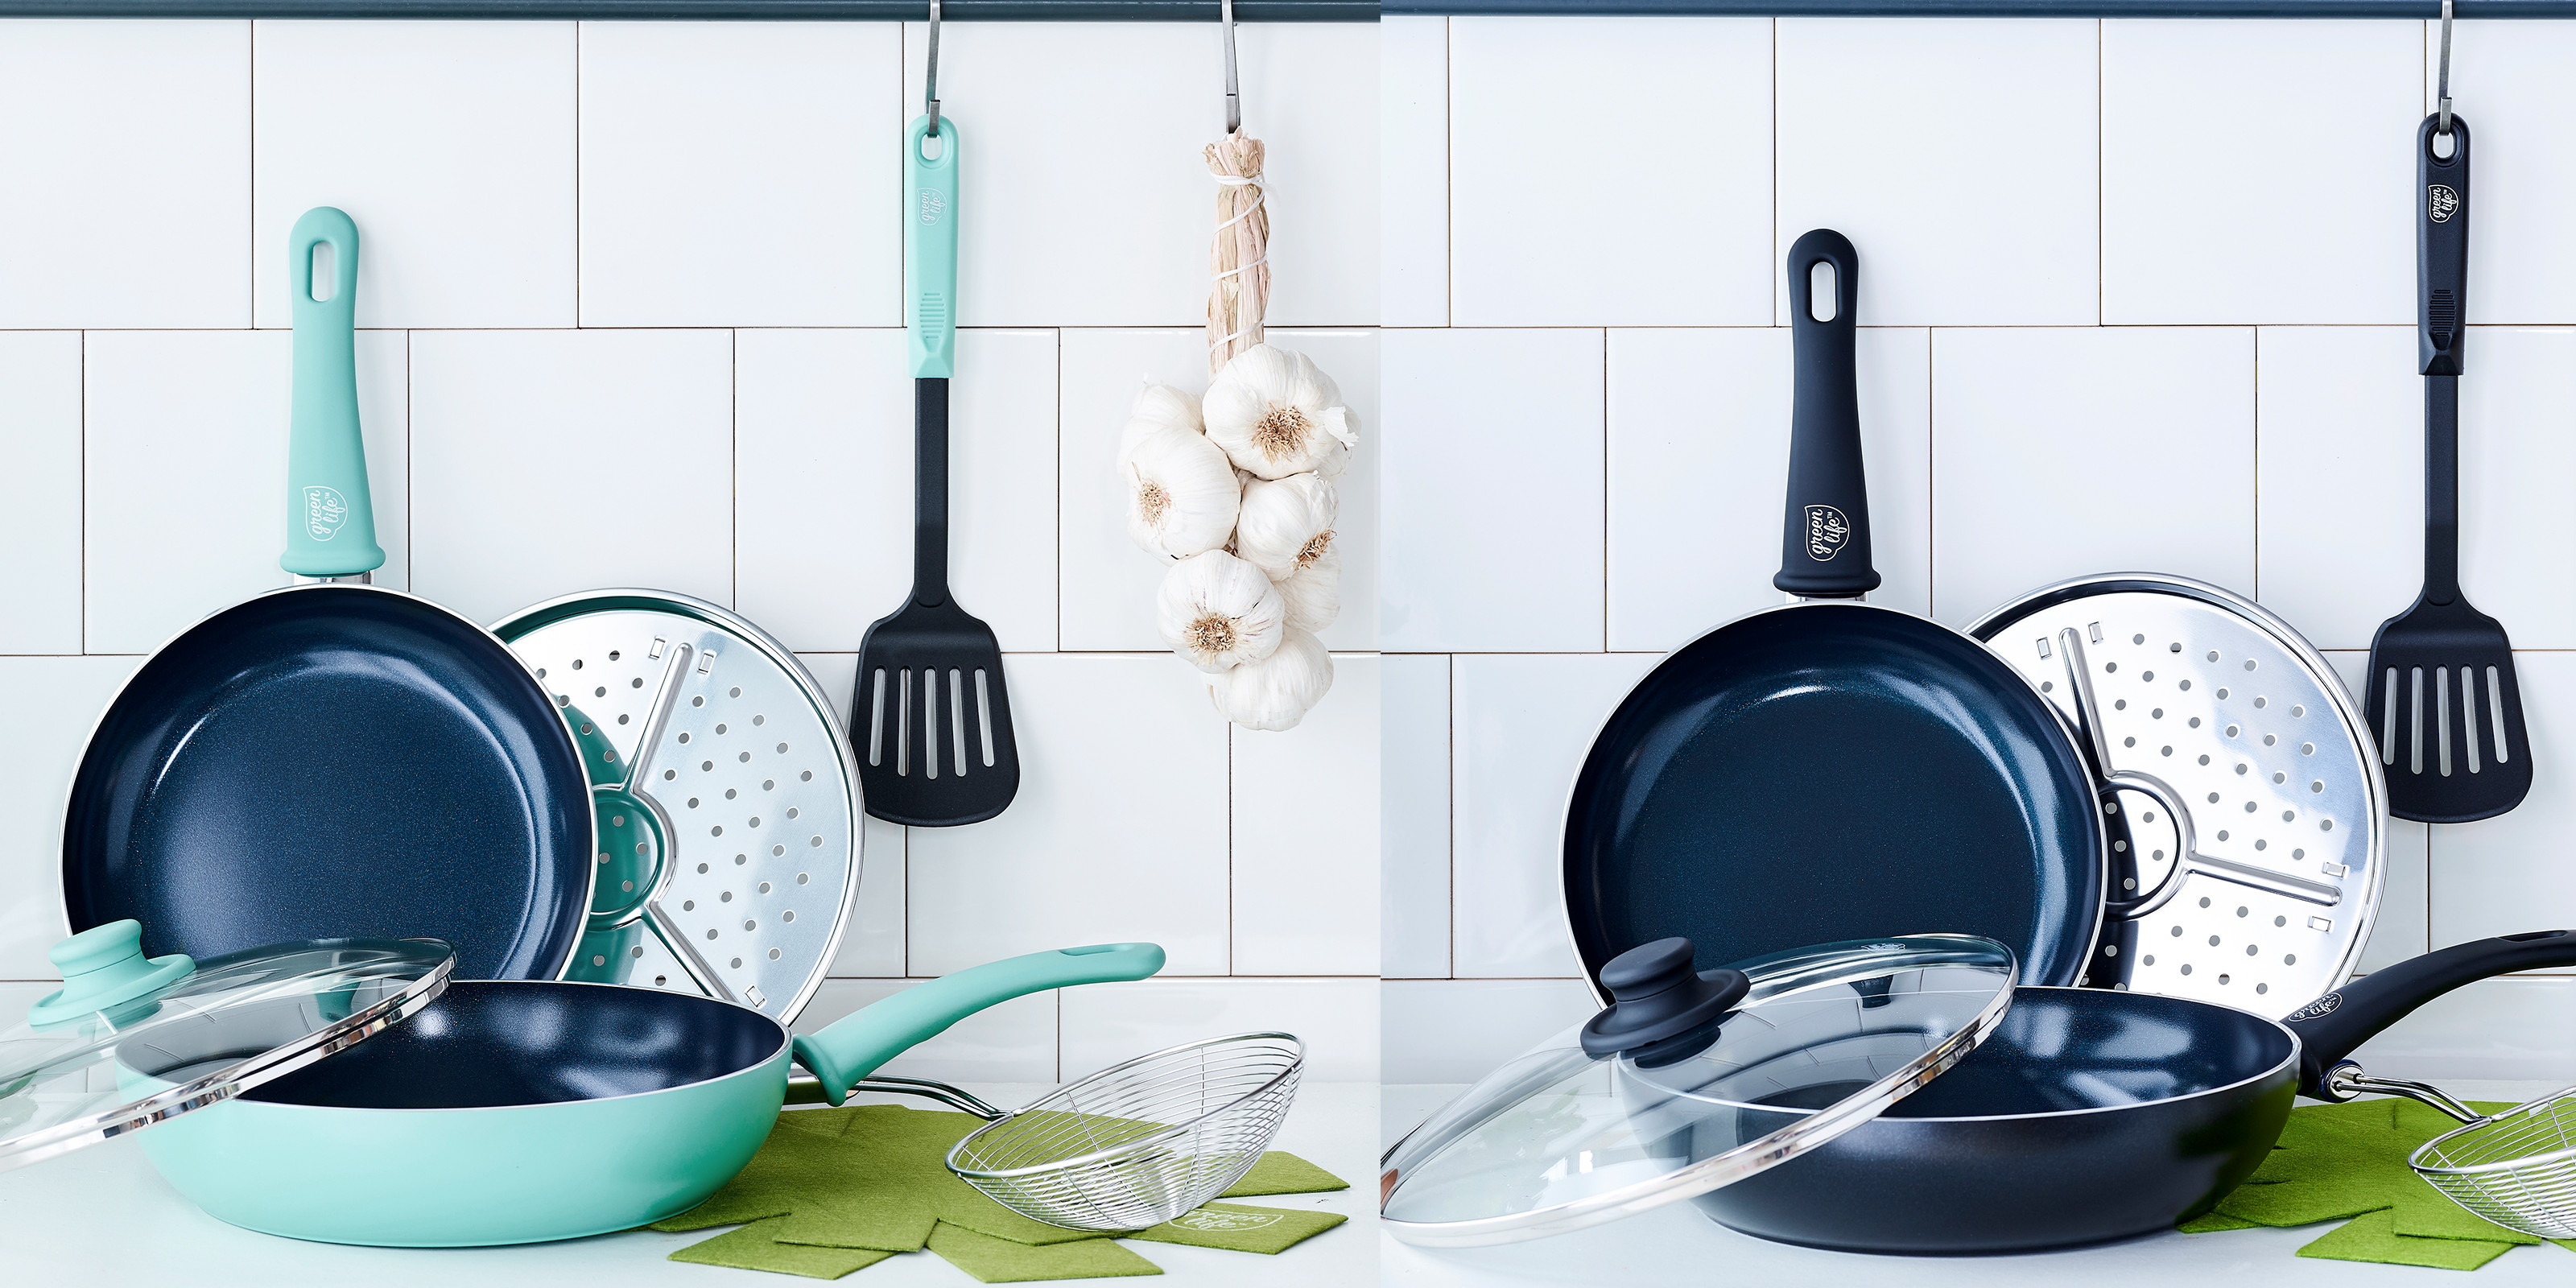 The toxin-free GreenLife Diamond Non-Stick Cookware Set is just $19 at Walmart (Reg. $32+)